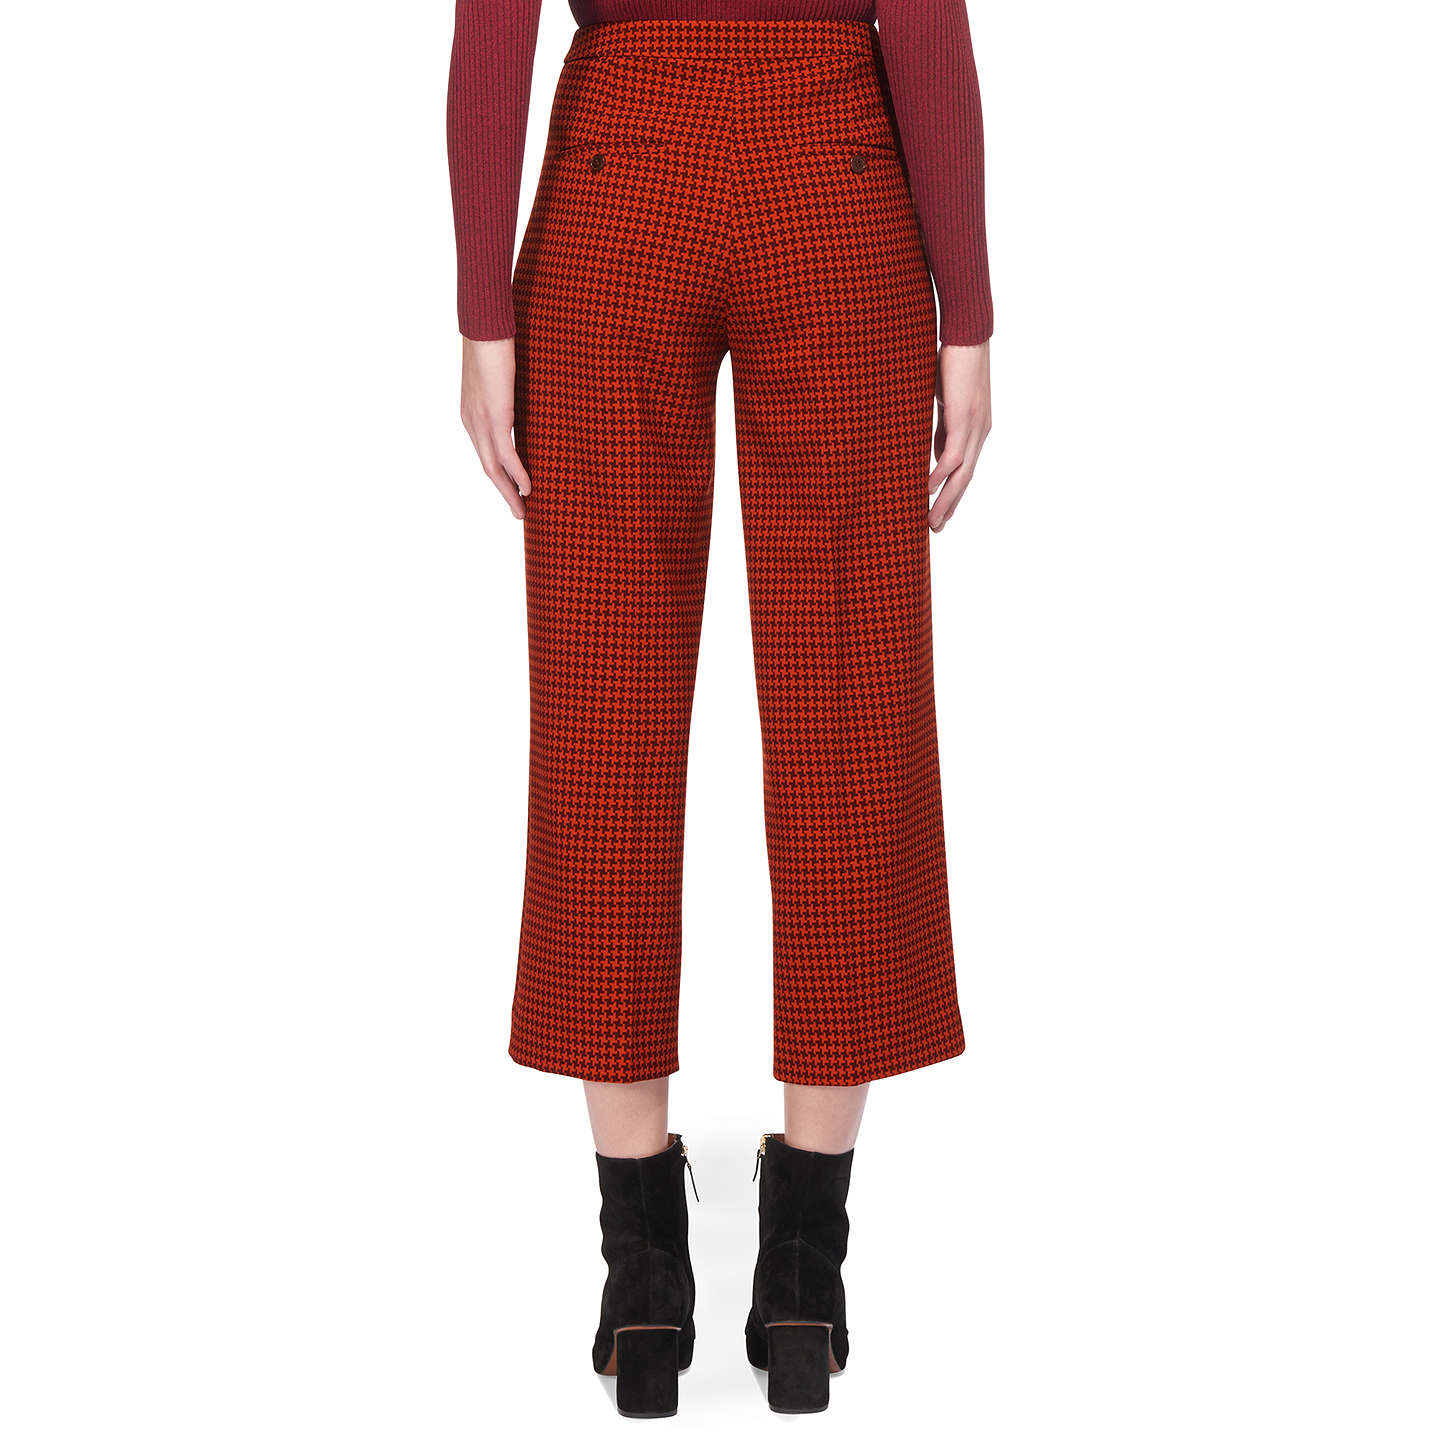 BuyWhistles Dogtooth Wide Cropped Trousers, Multi, 6 Online at johnlewis.com